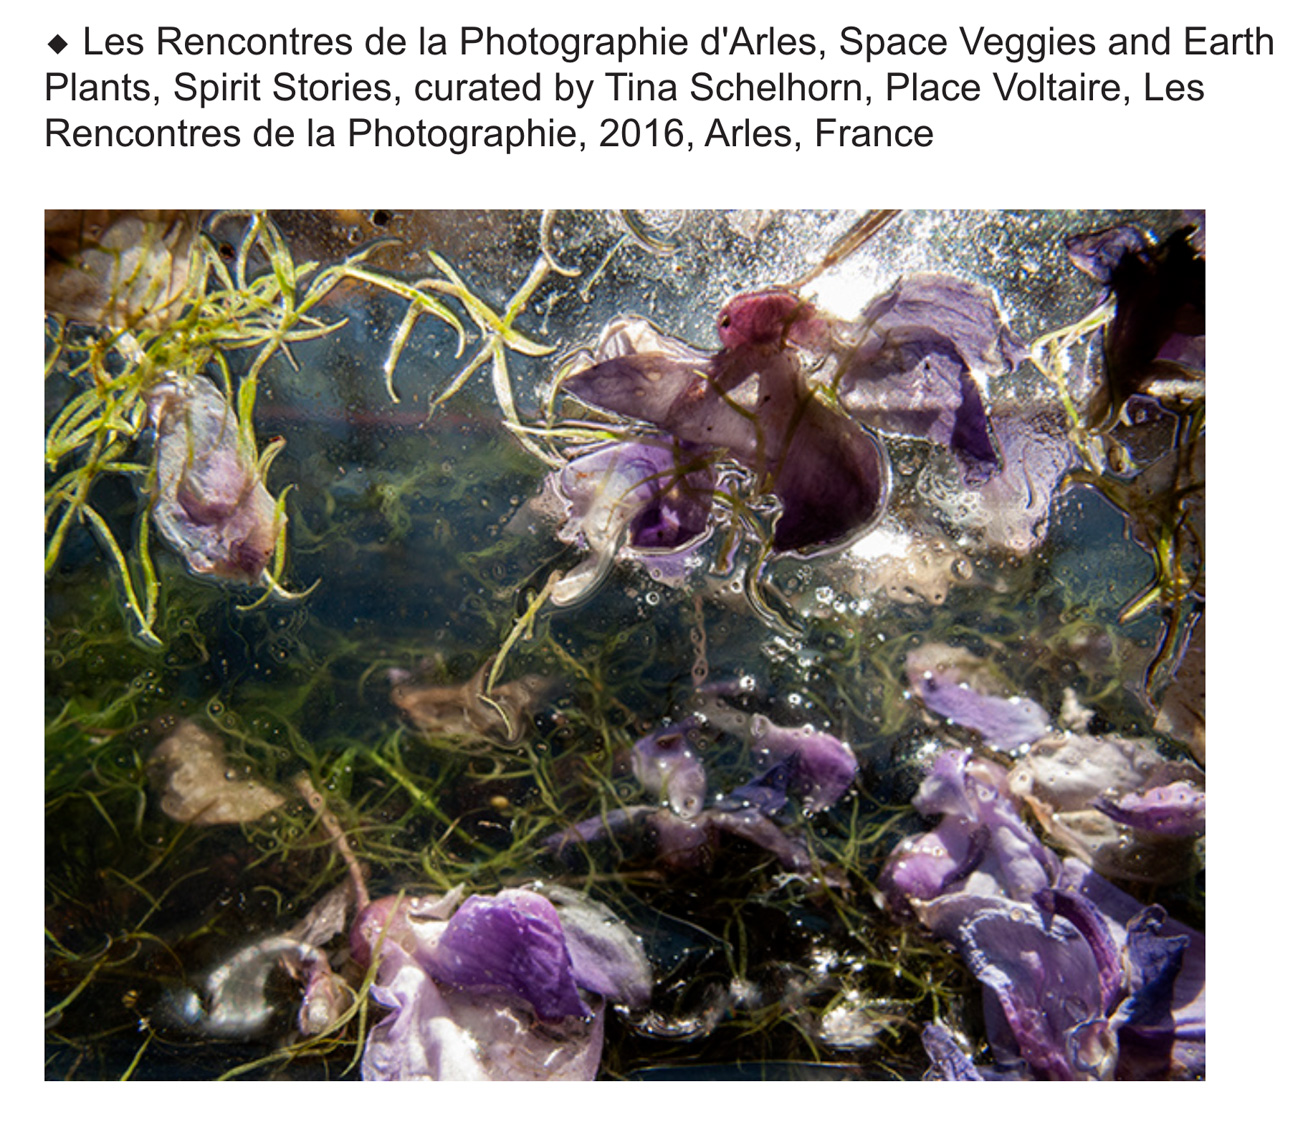 Les Rencontres de la Photographie d'Arles, Space Veggies and Earth Plants, Spirit Stories, curated by Tina Schelhorn, Place Voltaire, Arles, France